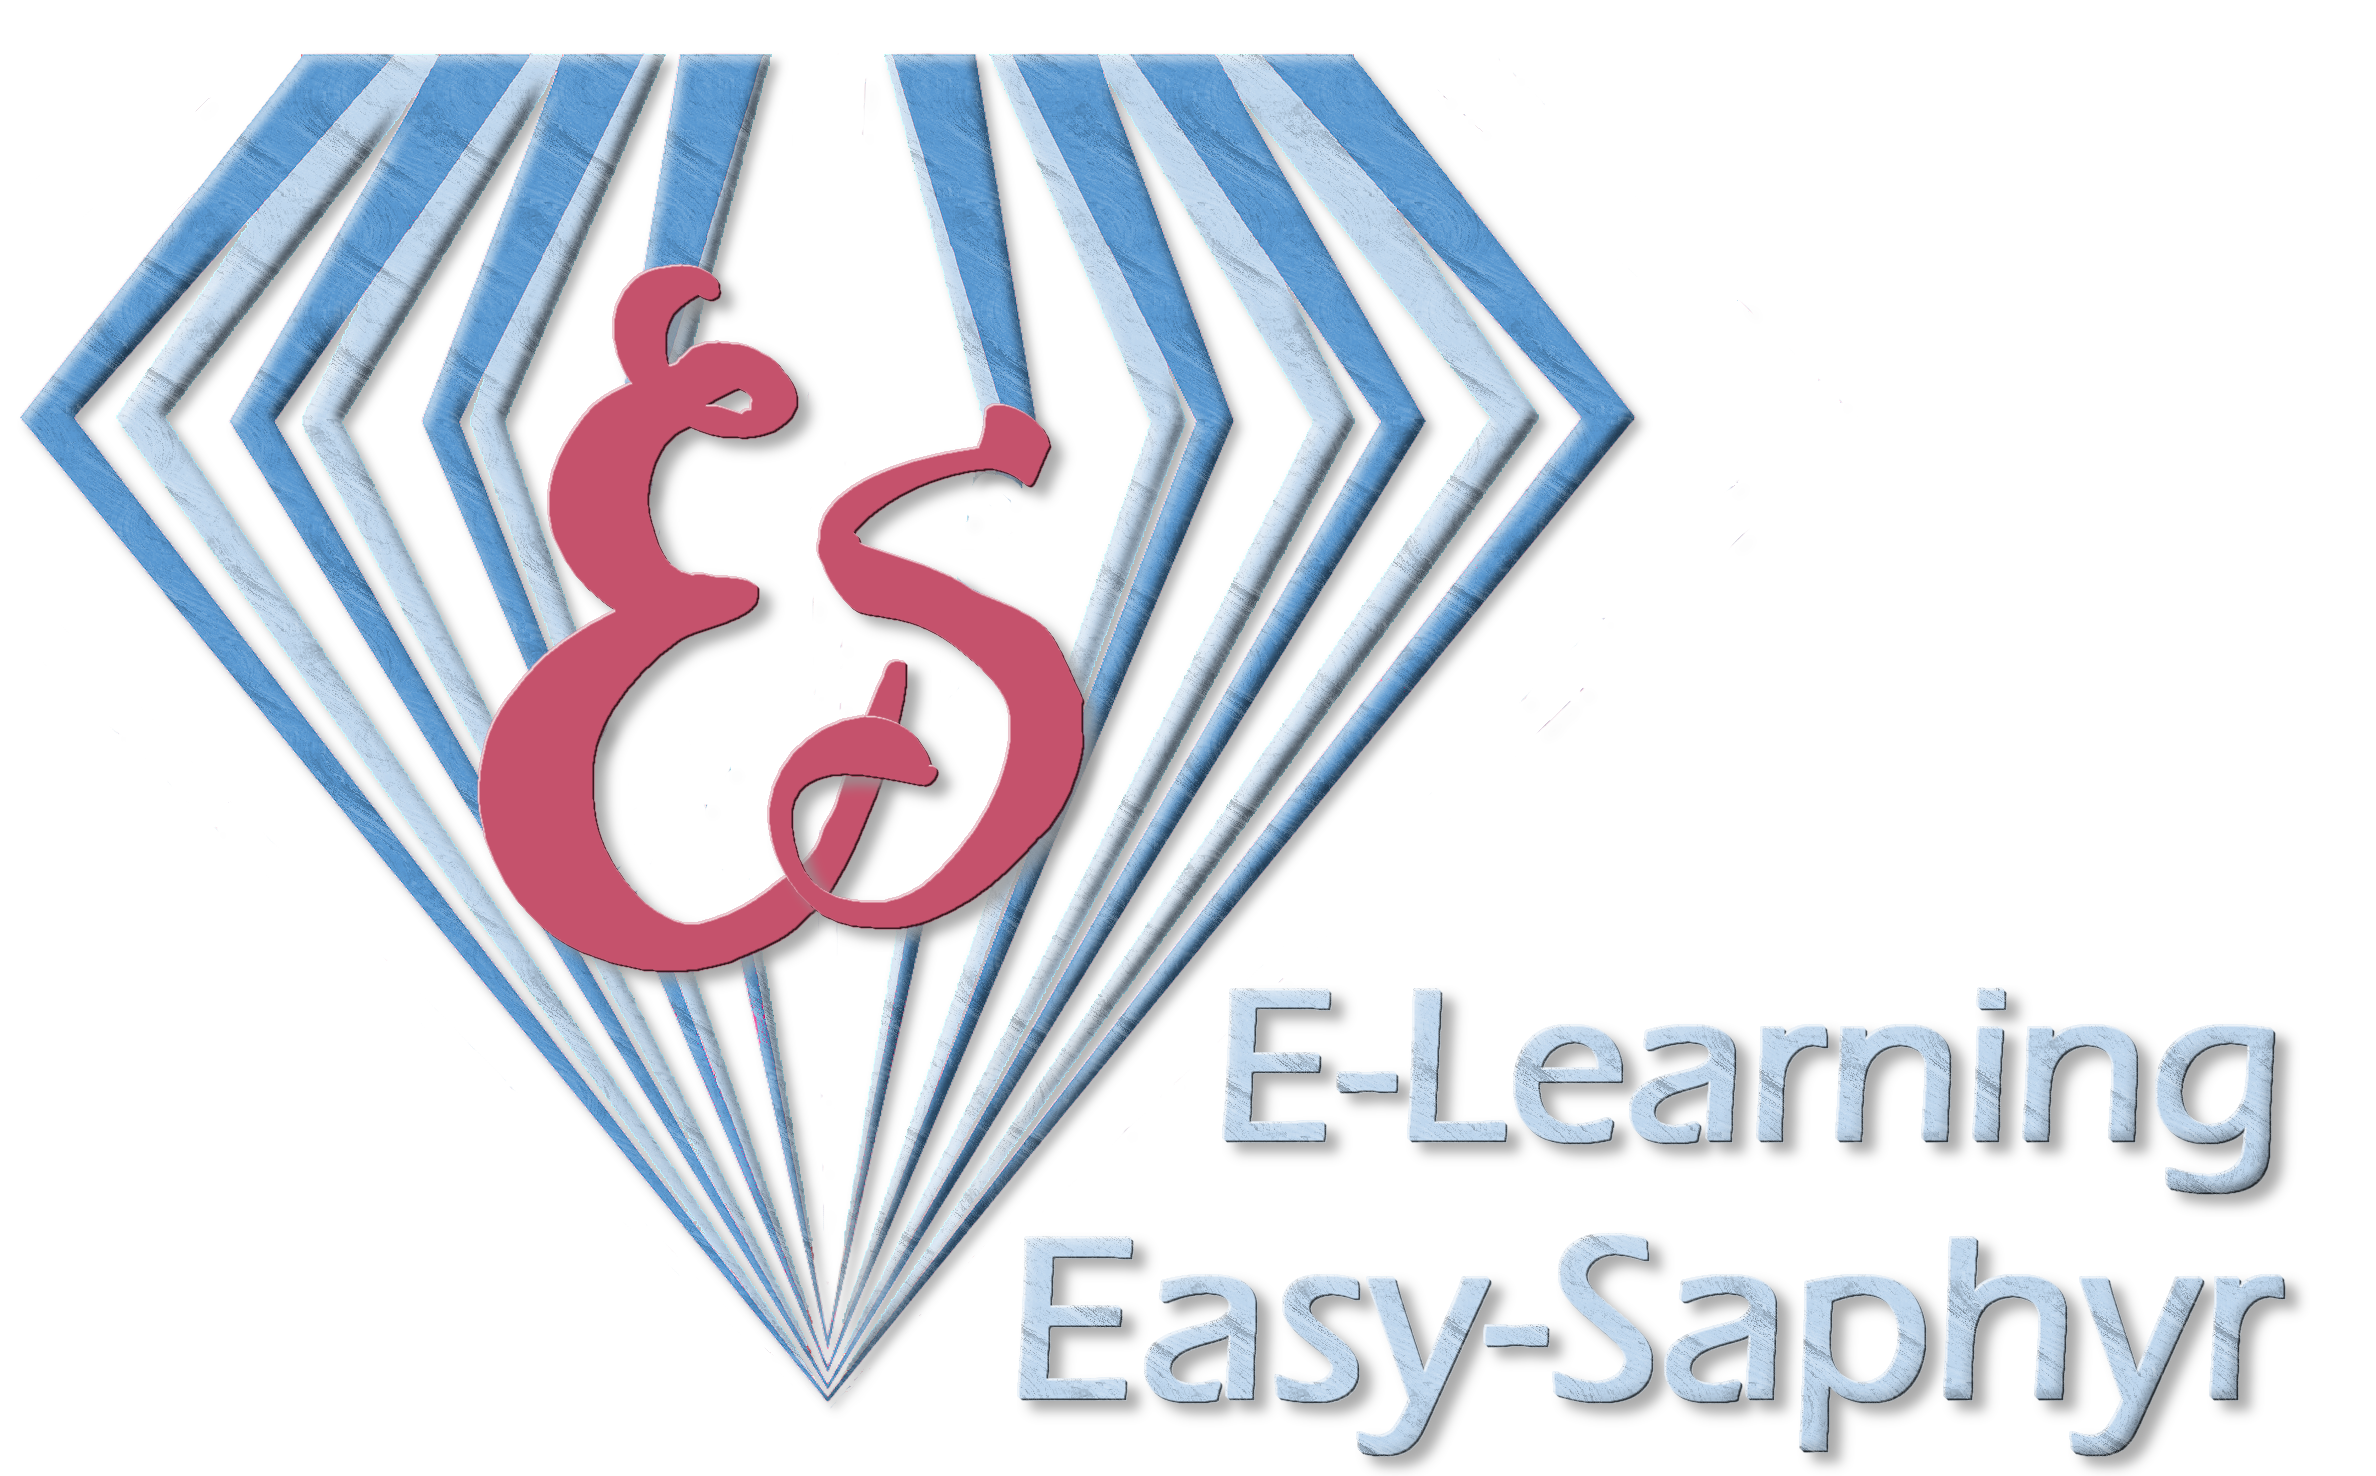 easy-saphyr elearning